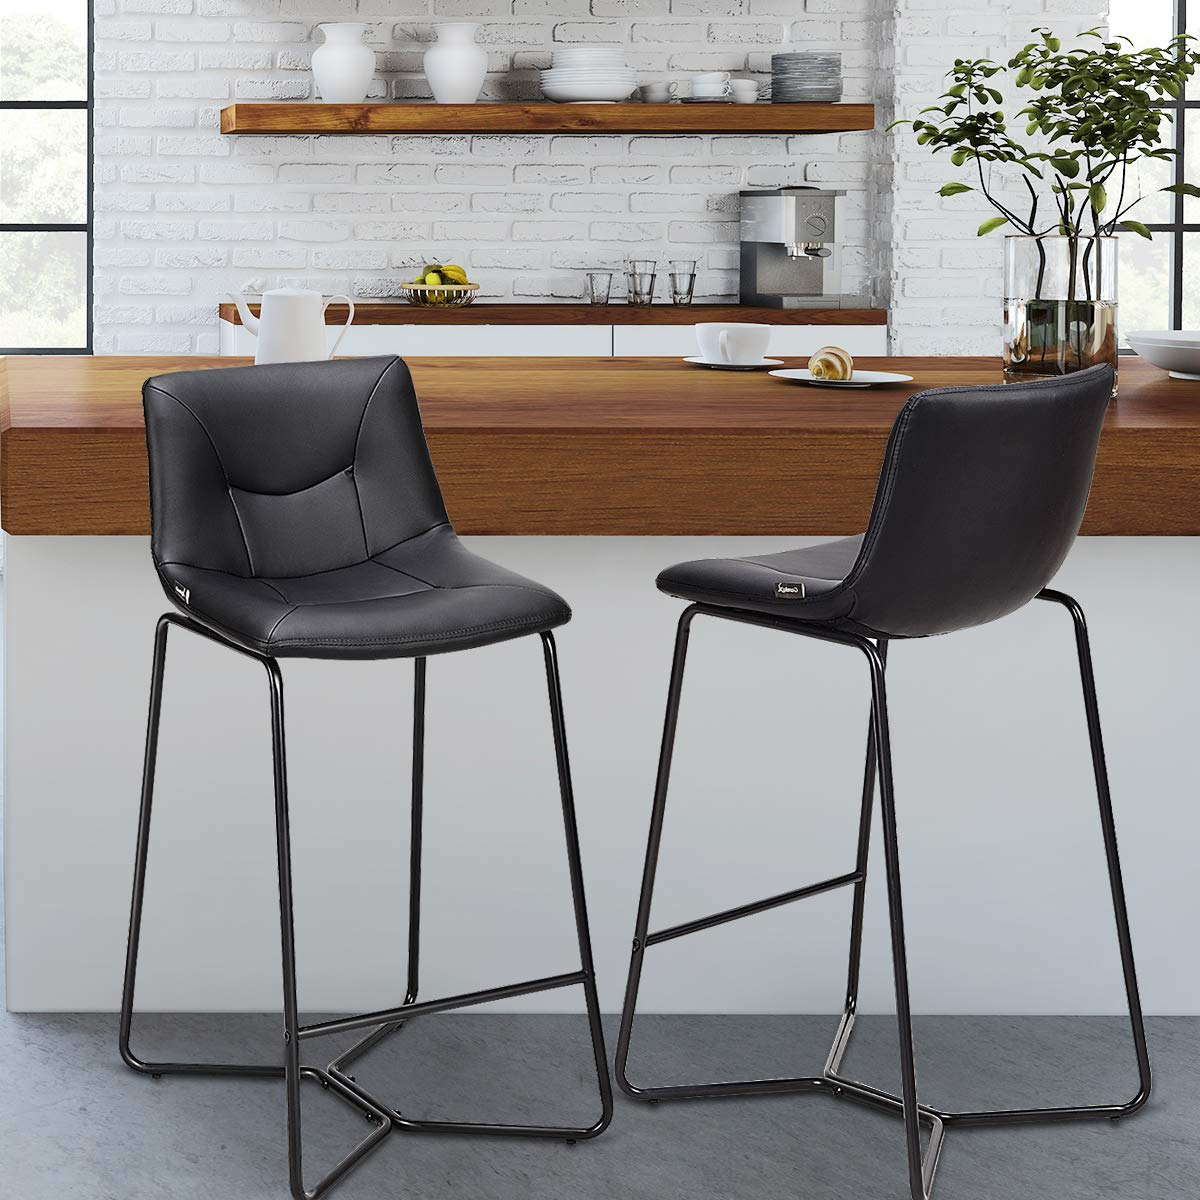 COSTWAY Dining Chair, Vintage Modern Counter Height Armless Back Upholstered Dining Chairs Faux Leather W Metal Legs Pub Dining Kitchen Side Dining Chair Set of 2 Black